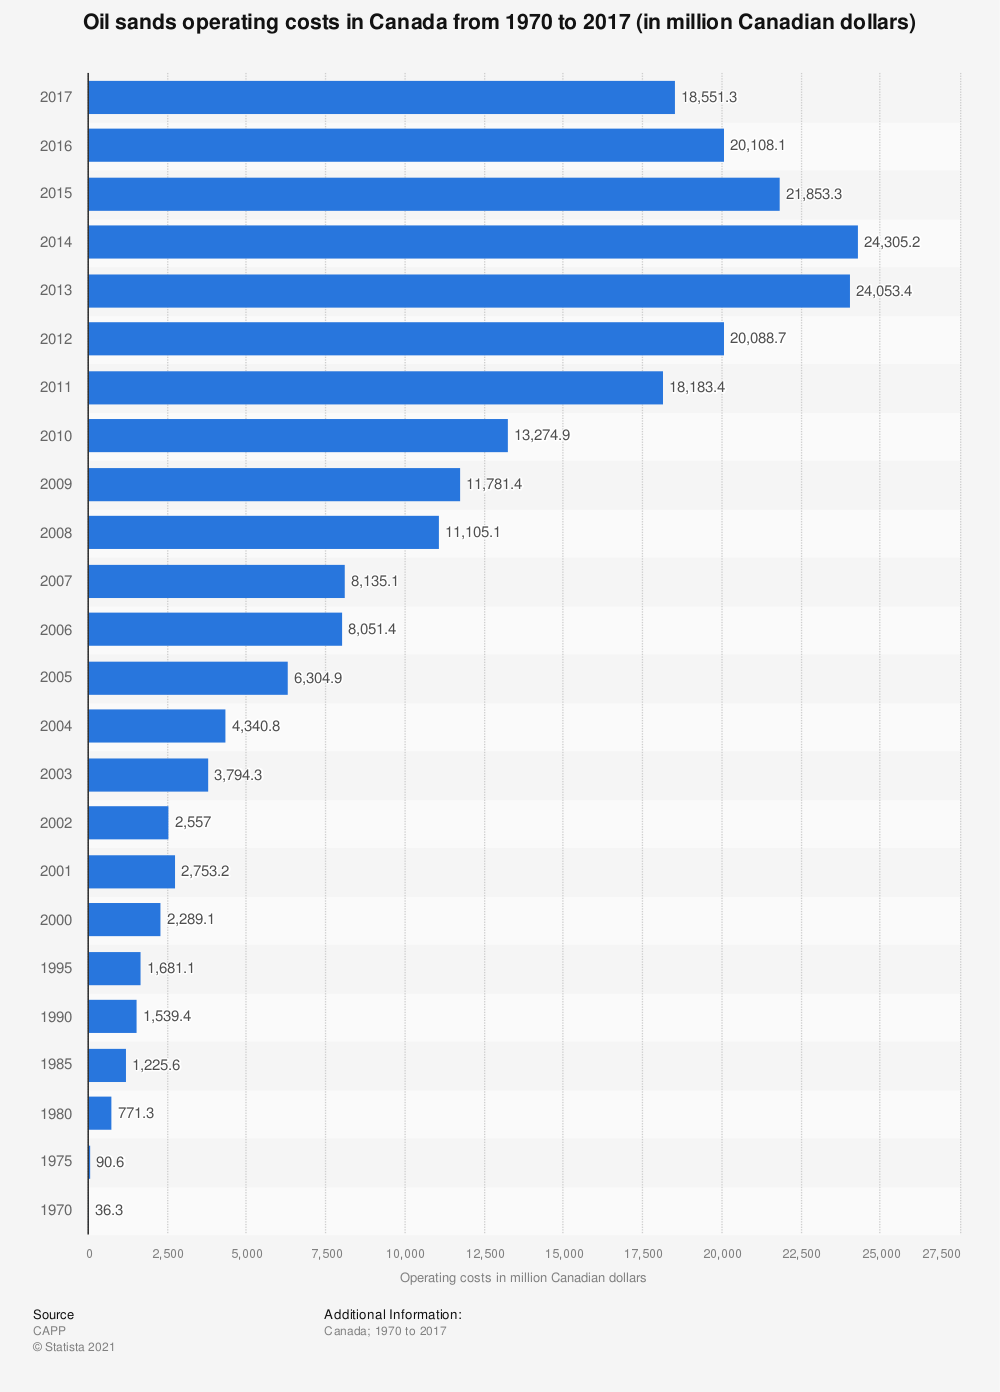 Statistic: Oil sands operating costs in Canada from 1970 to 2017 (in million Canadian dollars) | Statista